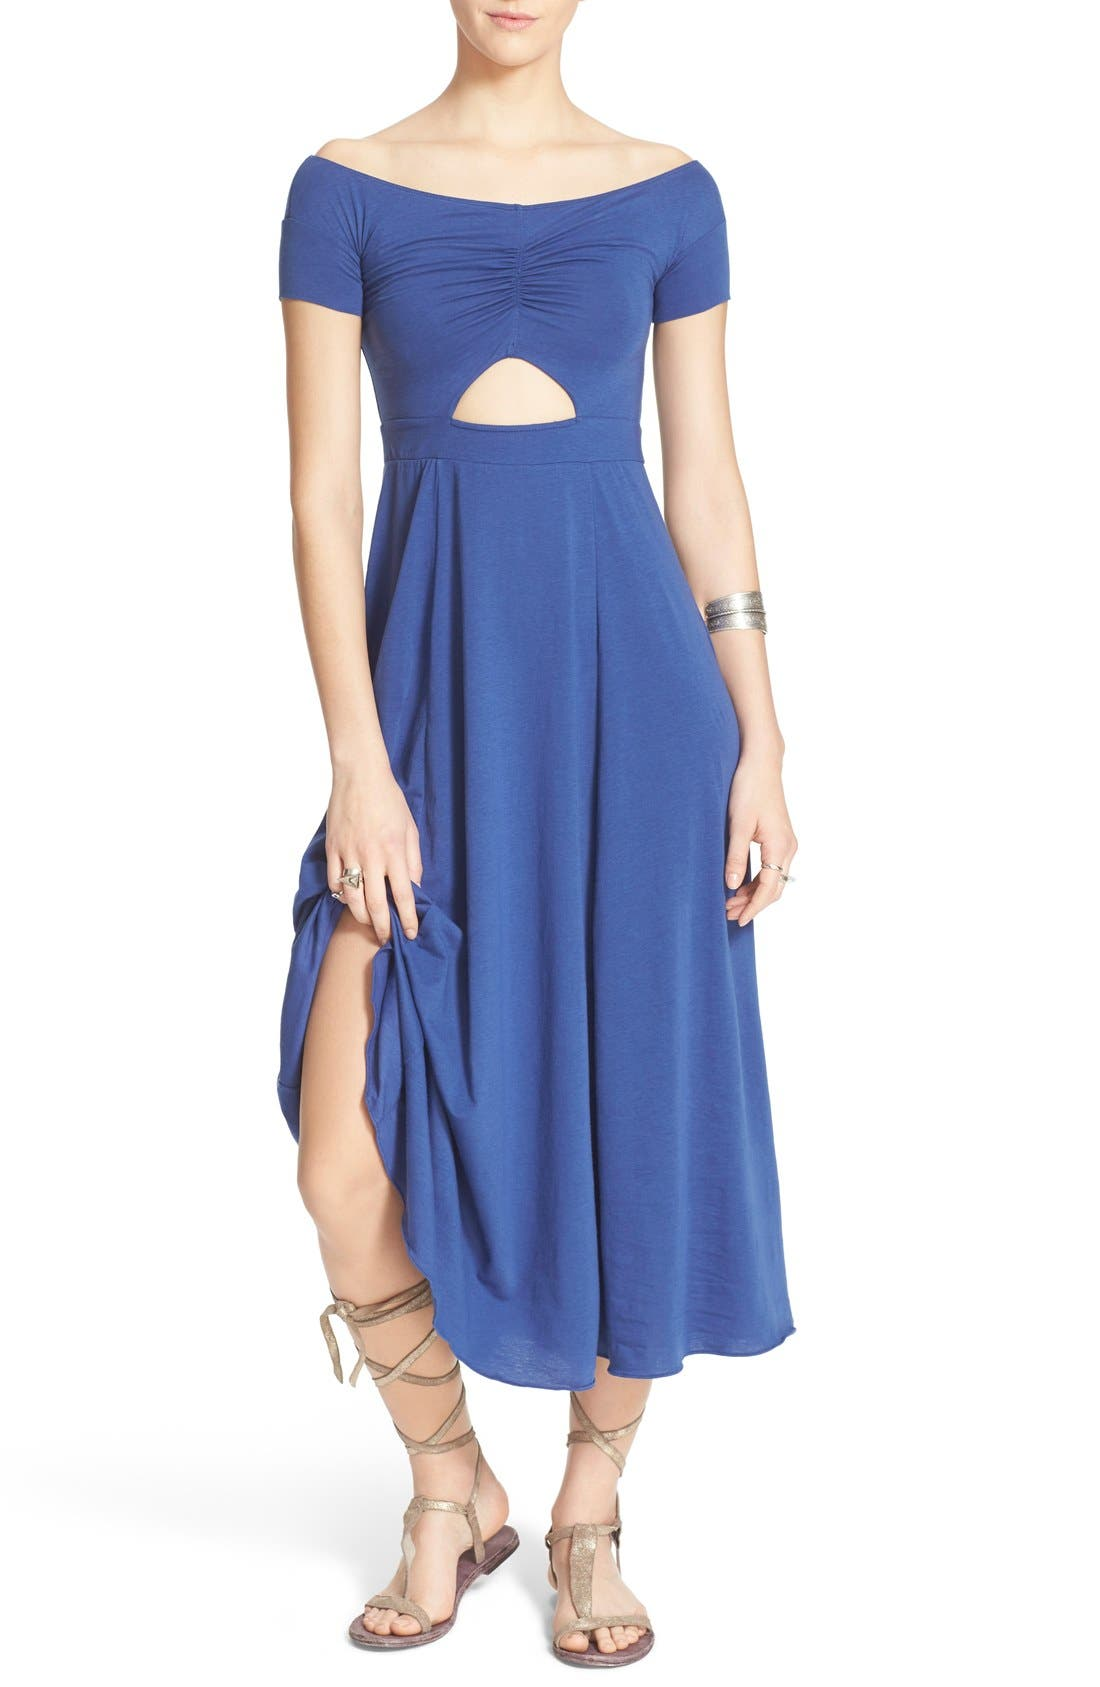 Alternate Image 1 Selected - Free People 'Dance with Me' Off the Shoulder Fit & Flare Dress